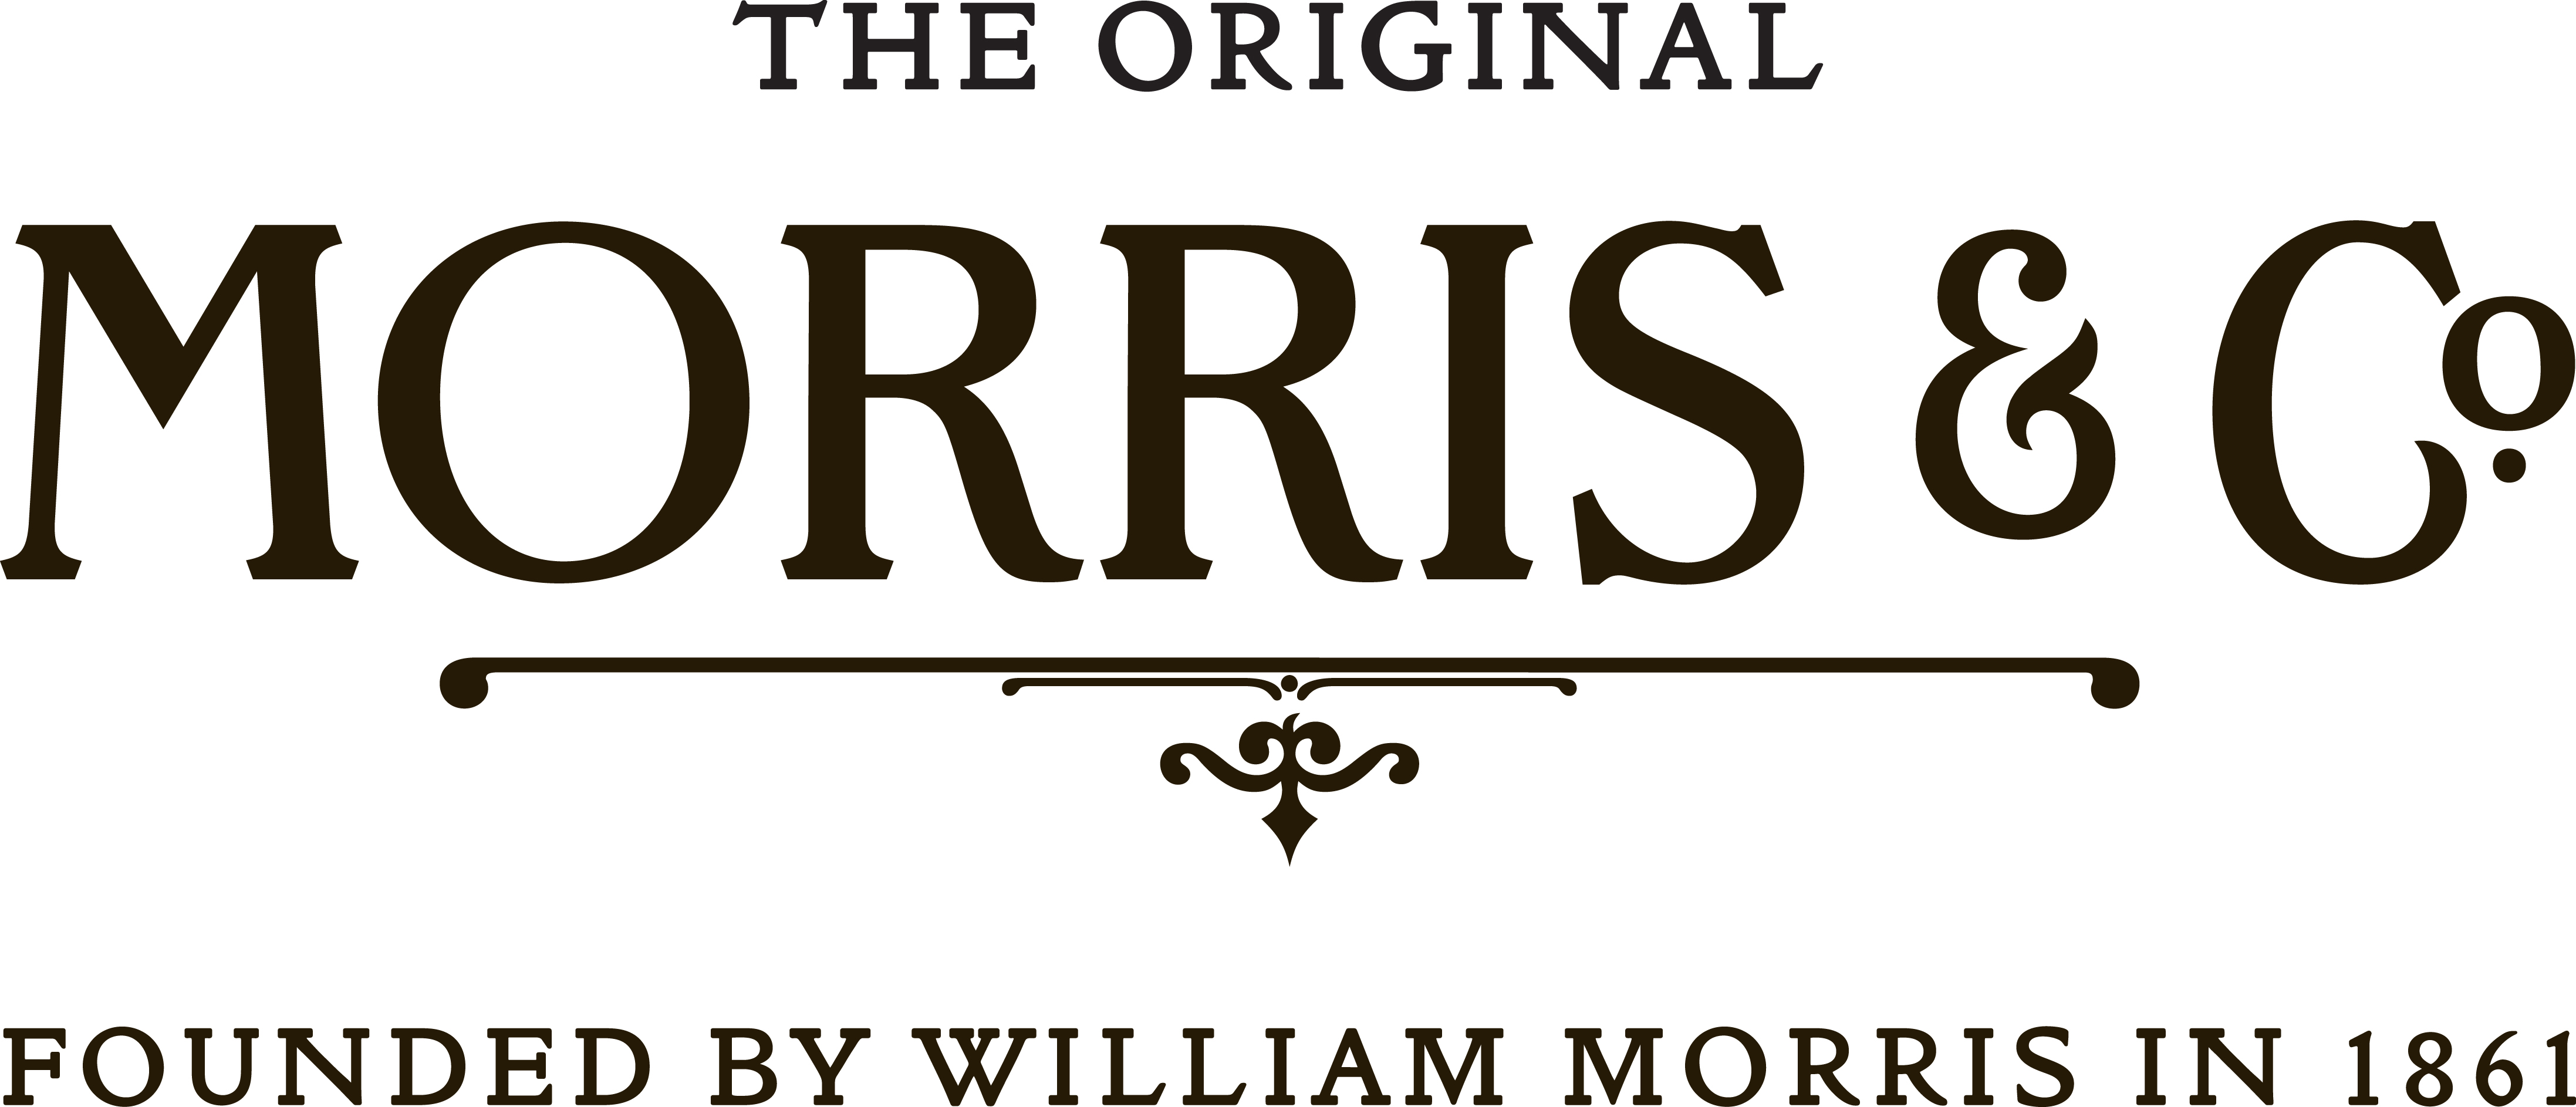 Morris-Co-logo-2013-black